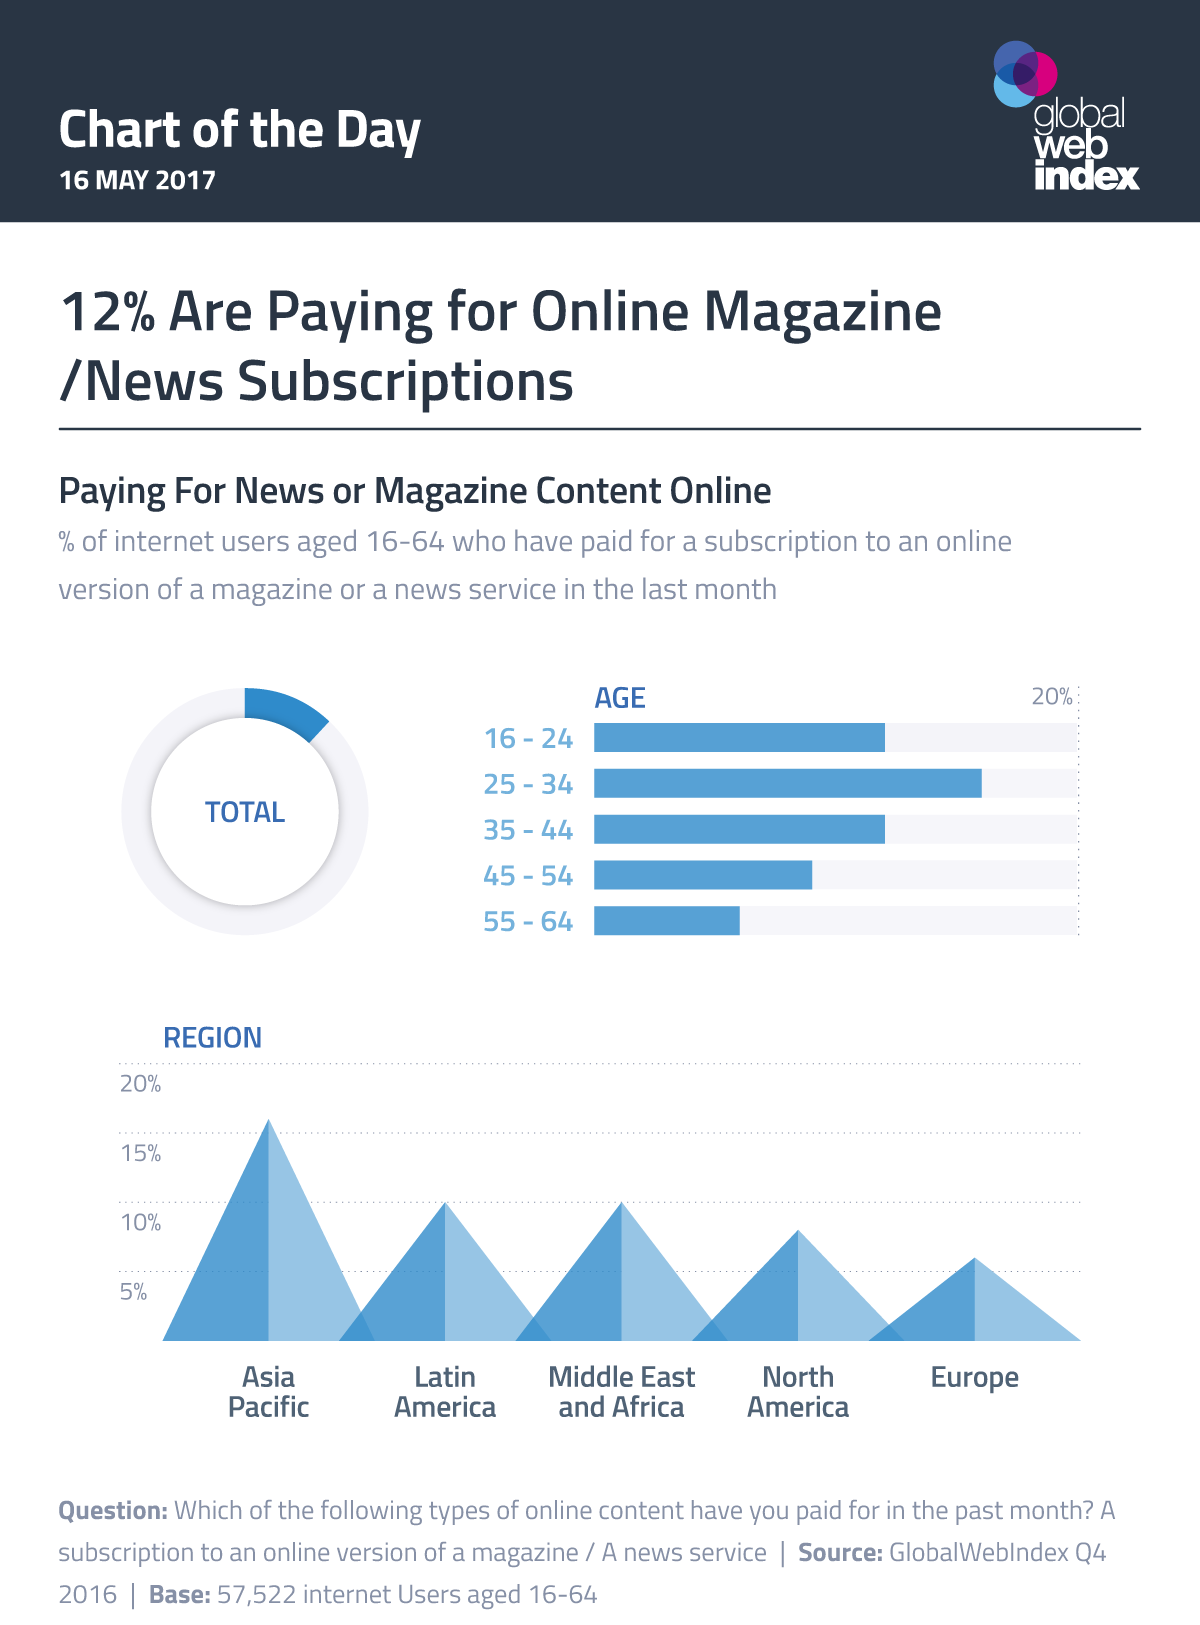 12% Are Paying for Online Magazine/News Subscriptions